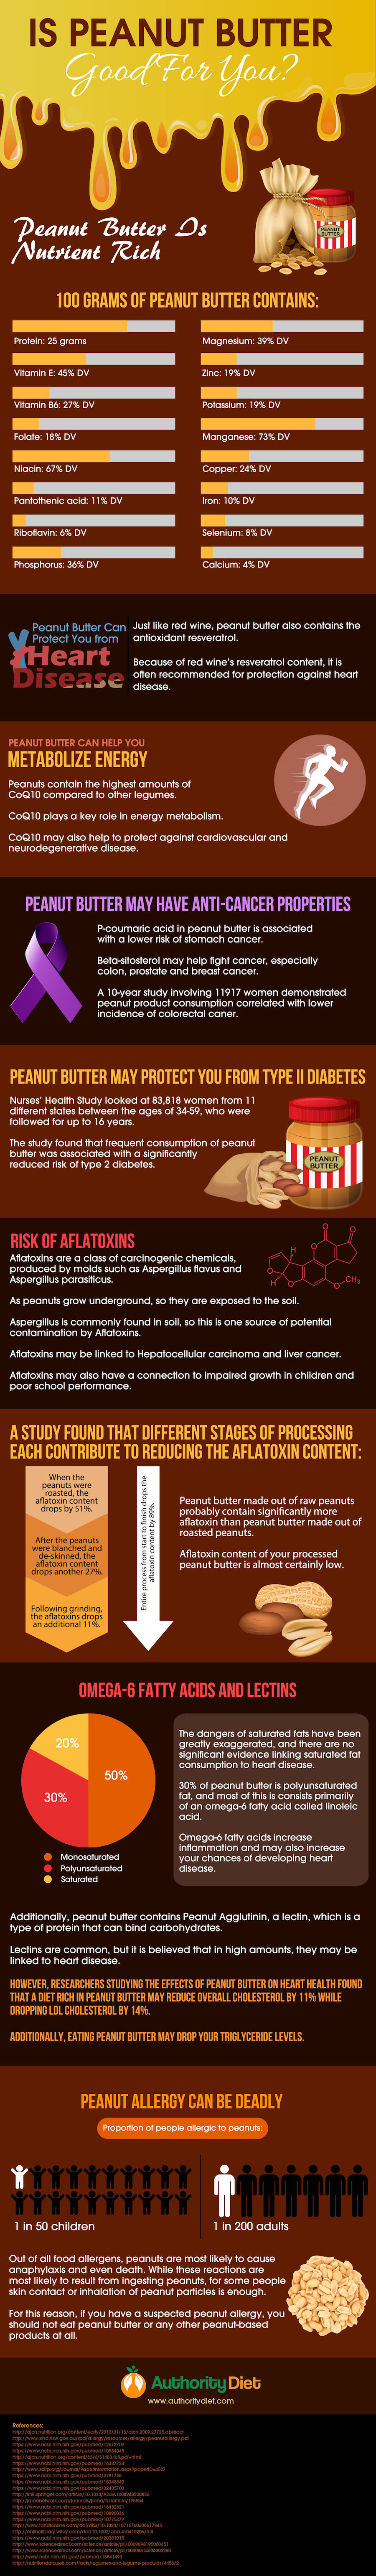 Should You Be Eating Peanut Butter? - Infographic